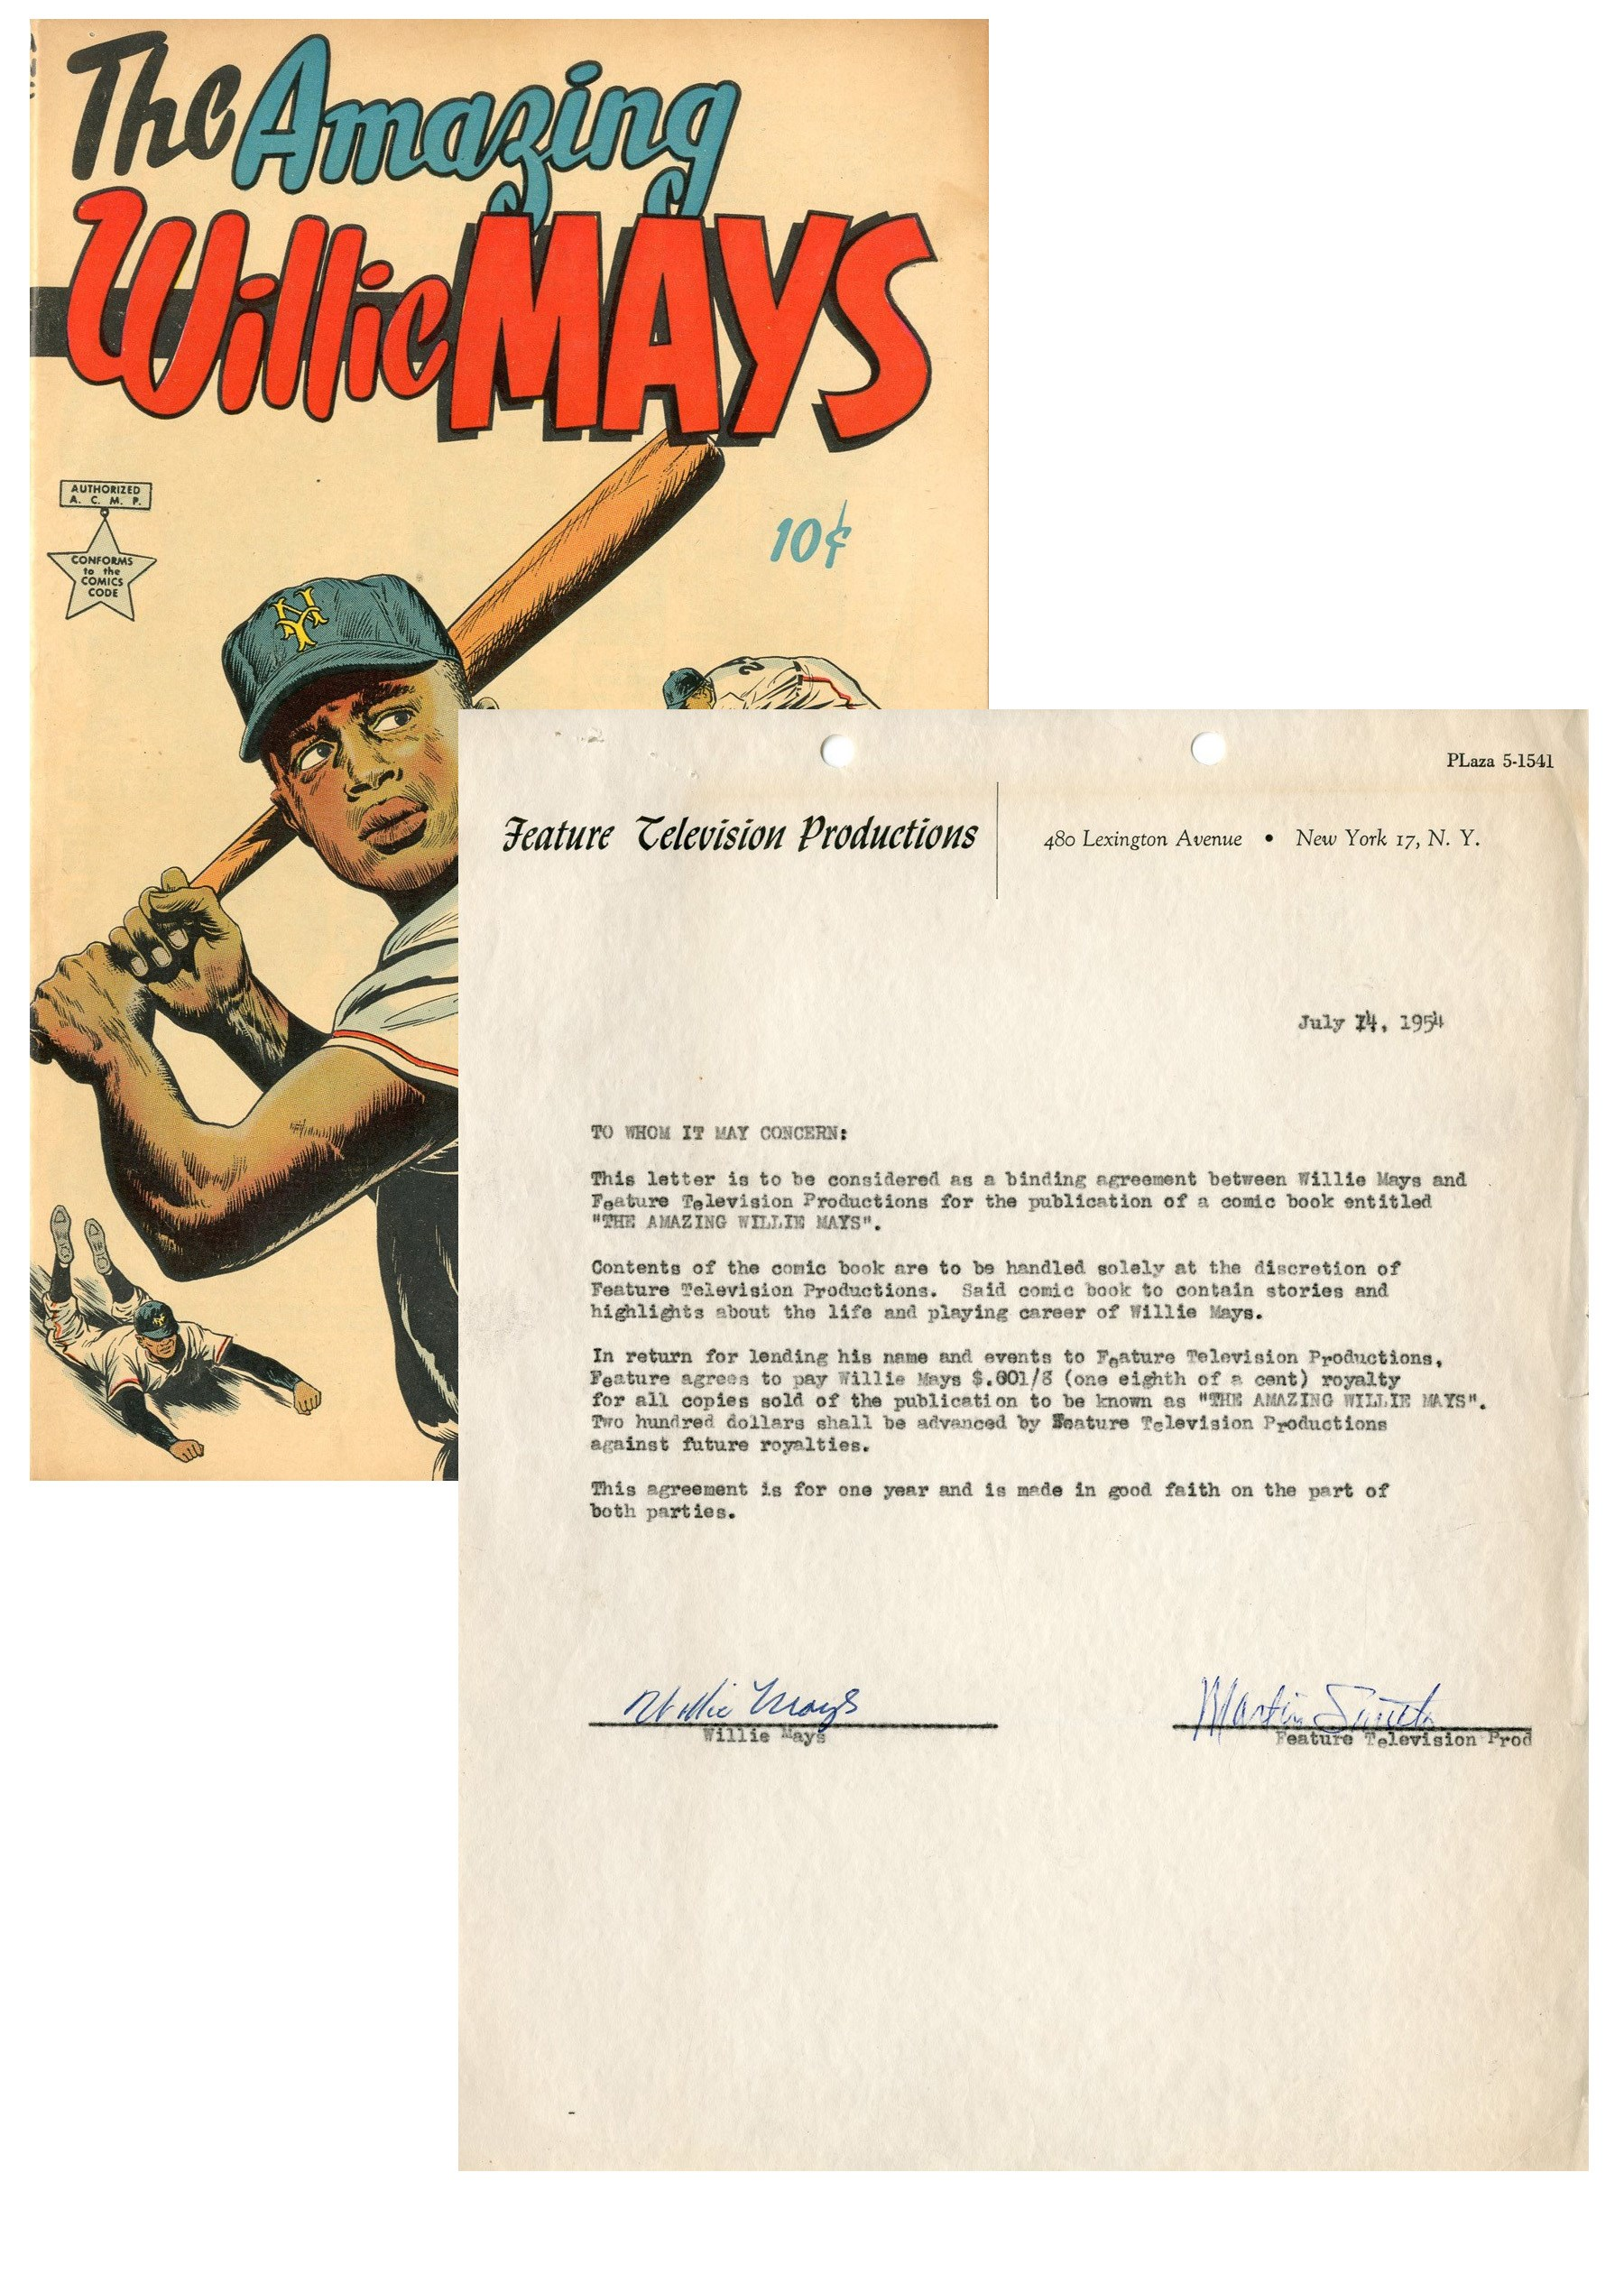 1954 Willie Mays Signed